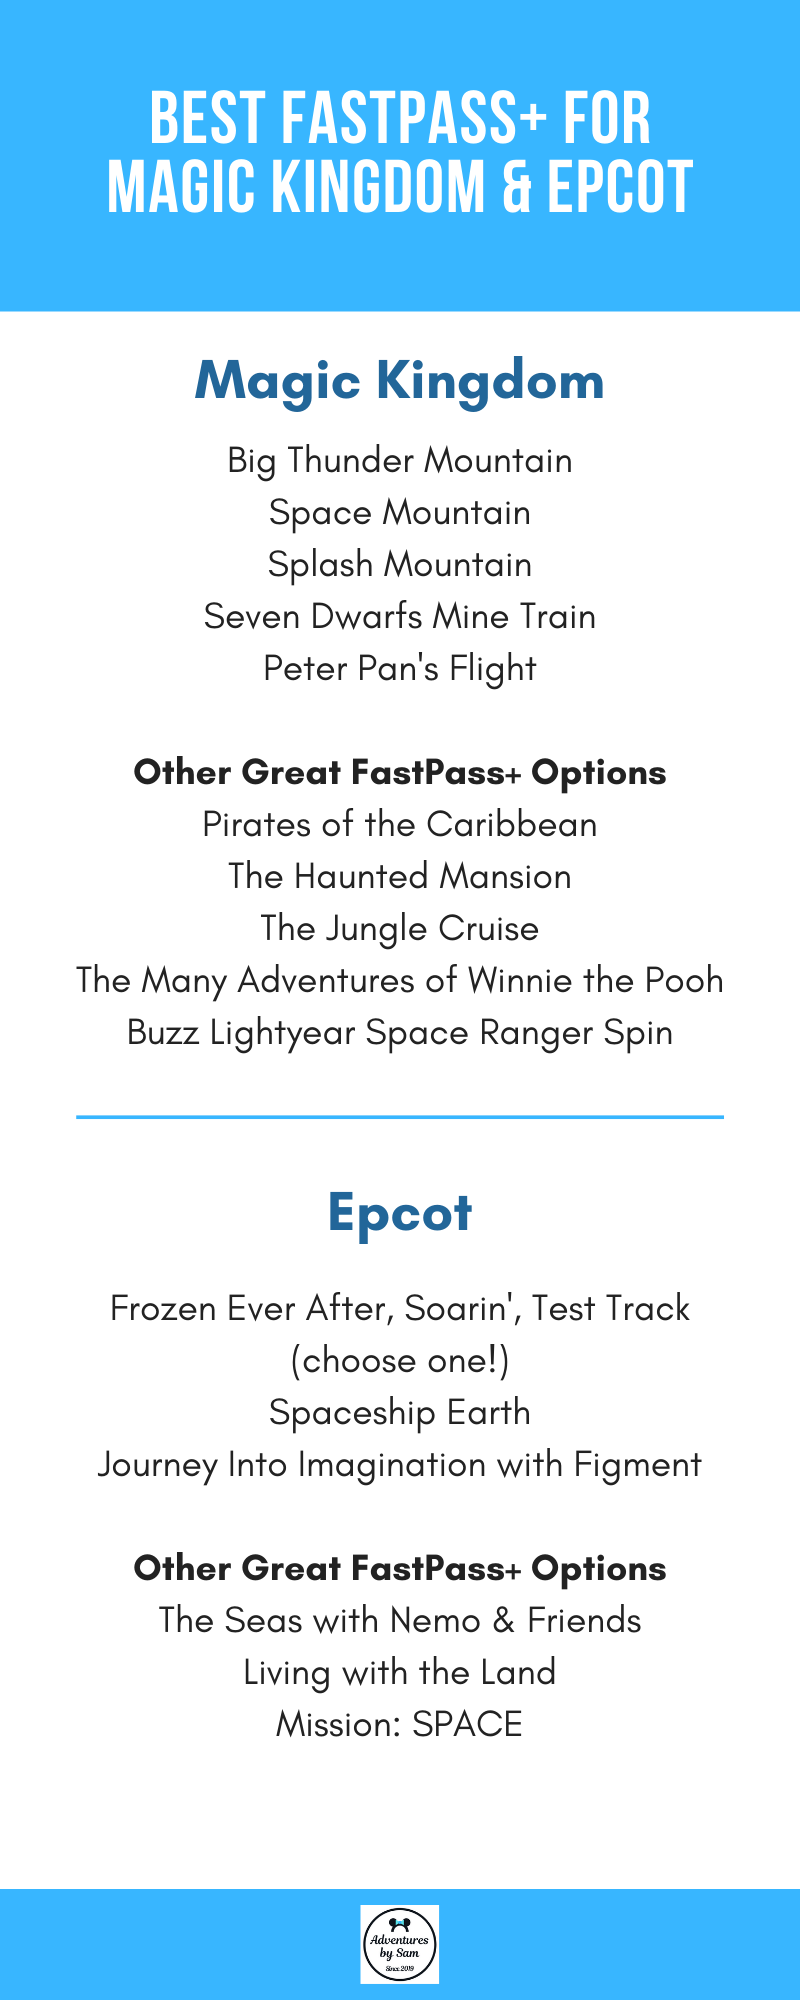 Best FastPass+ Reservations for Magic Kingdom & Epcot (Infographic)